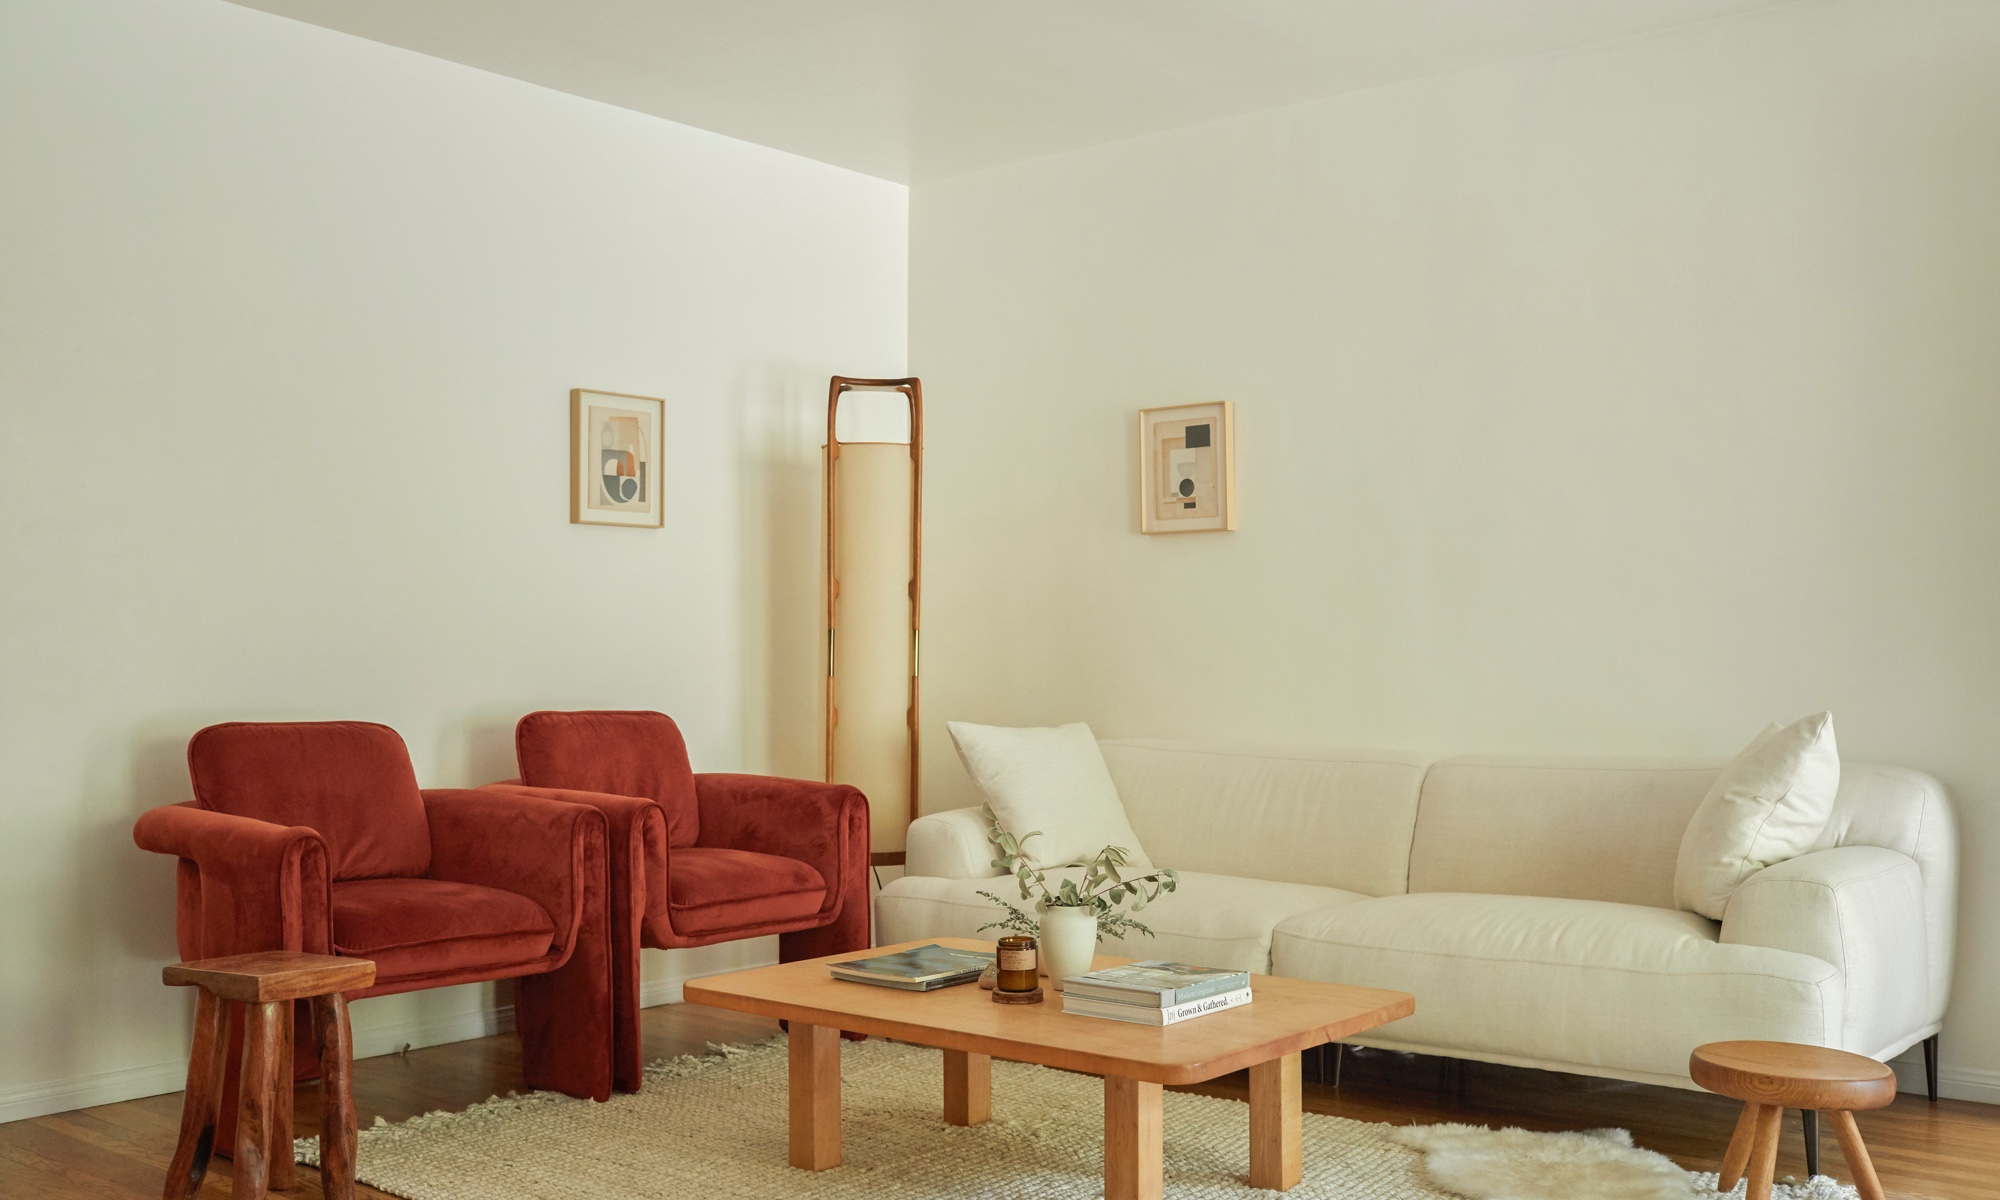 The orange-y red chairs are favorites of Jodi's. Her collection of wooden stools proves multifunctional in the space.